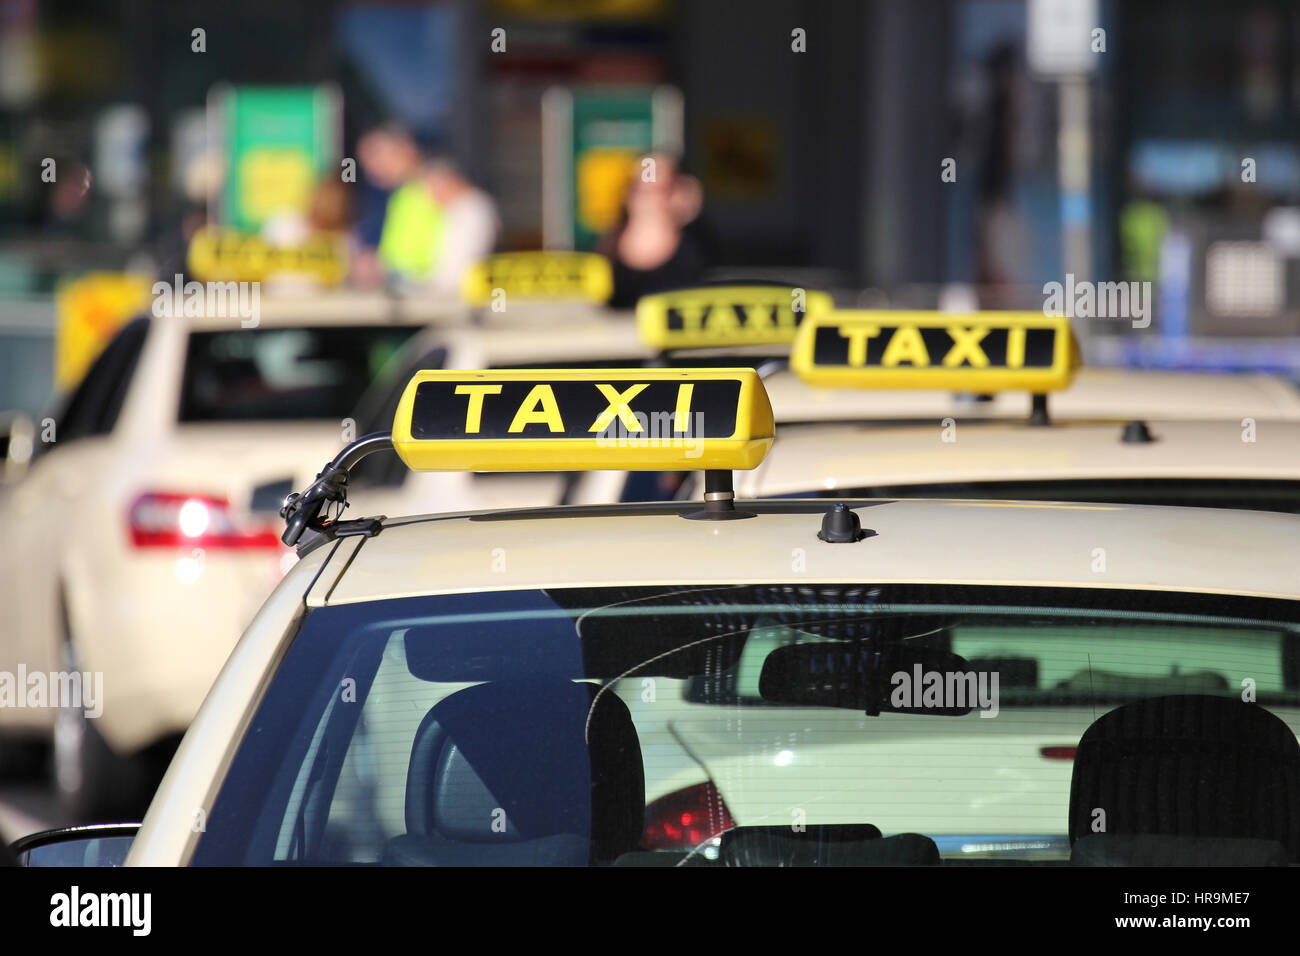 German taxi cabs waiting for passengers - Stock Image